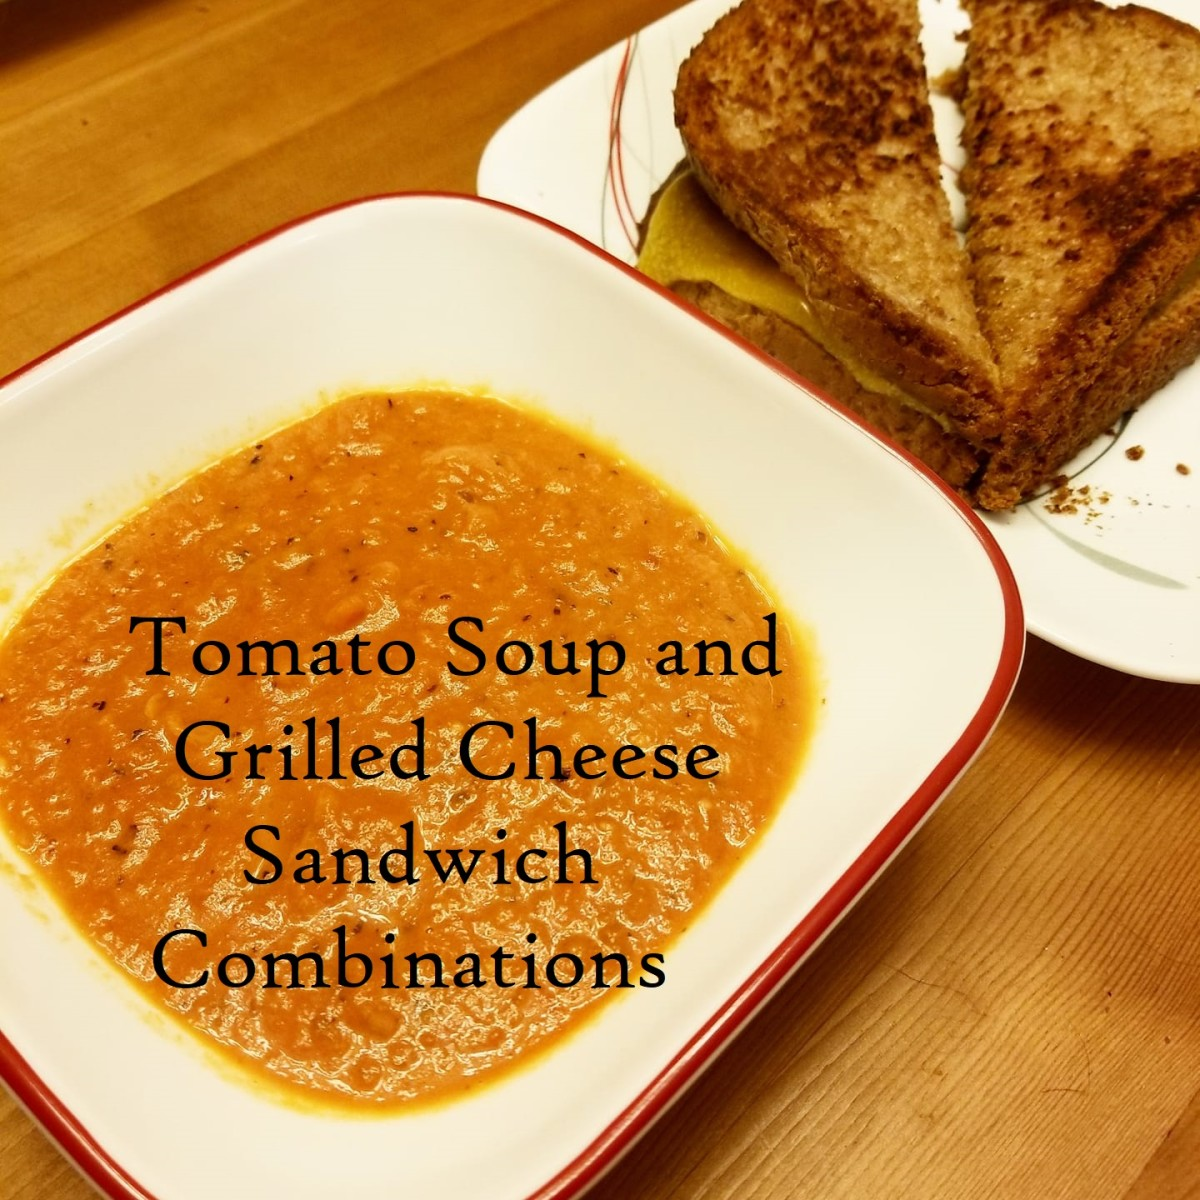 Tomato Soup and Grilled Cheese Sandwich Combinations